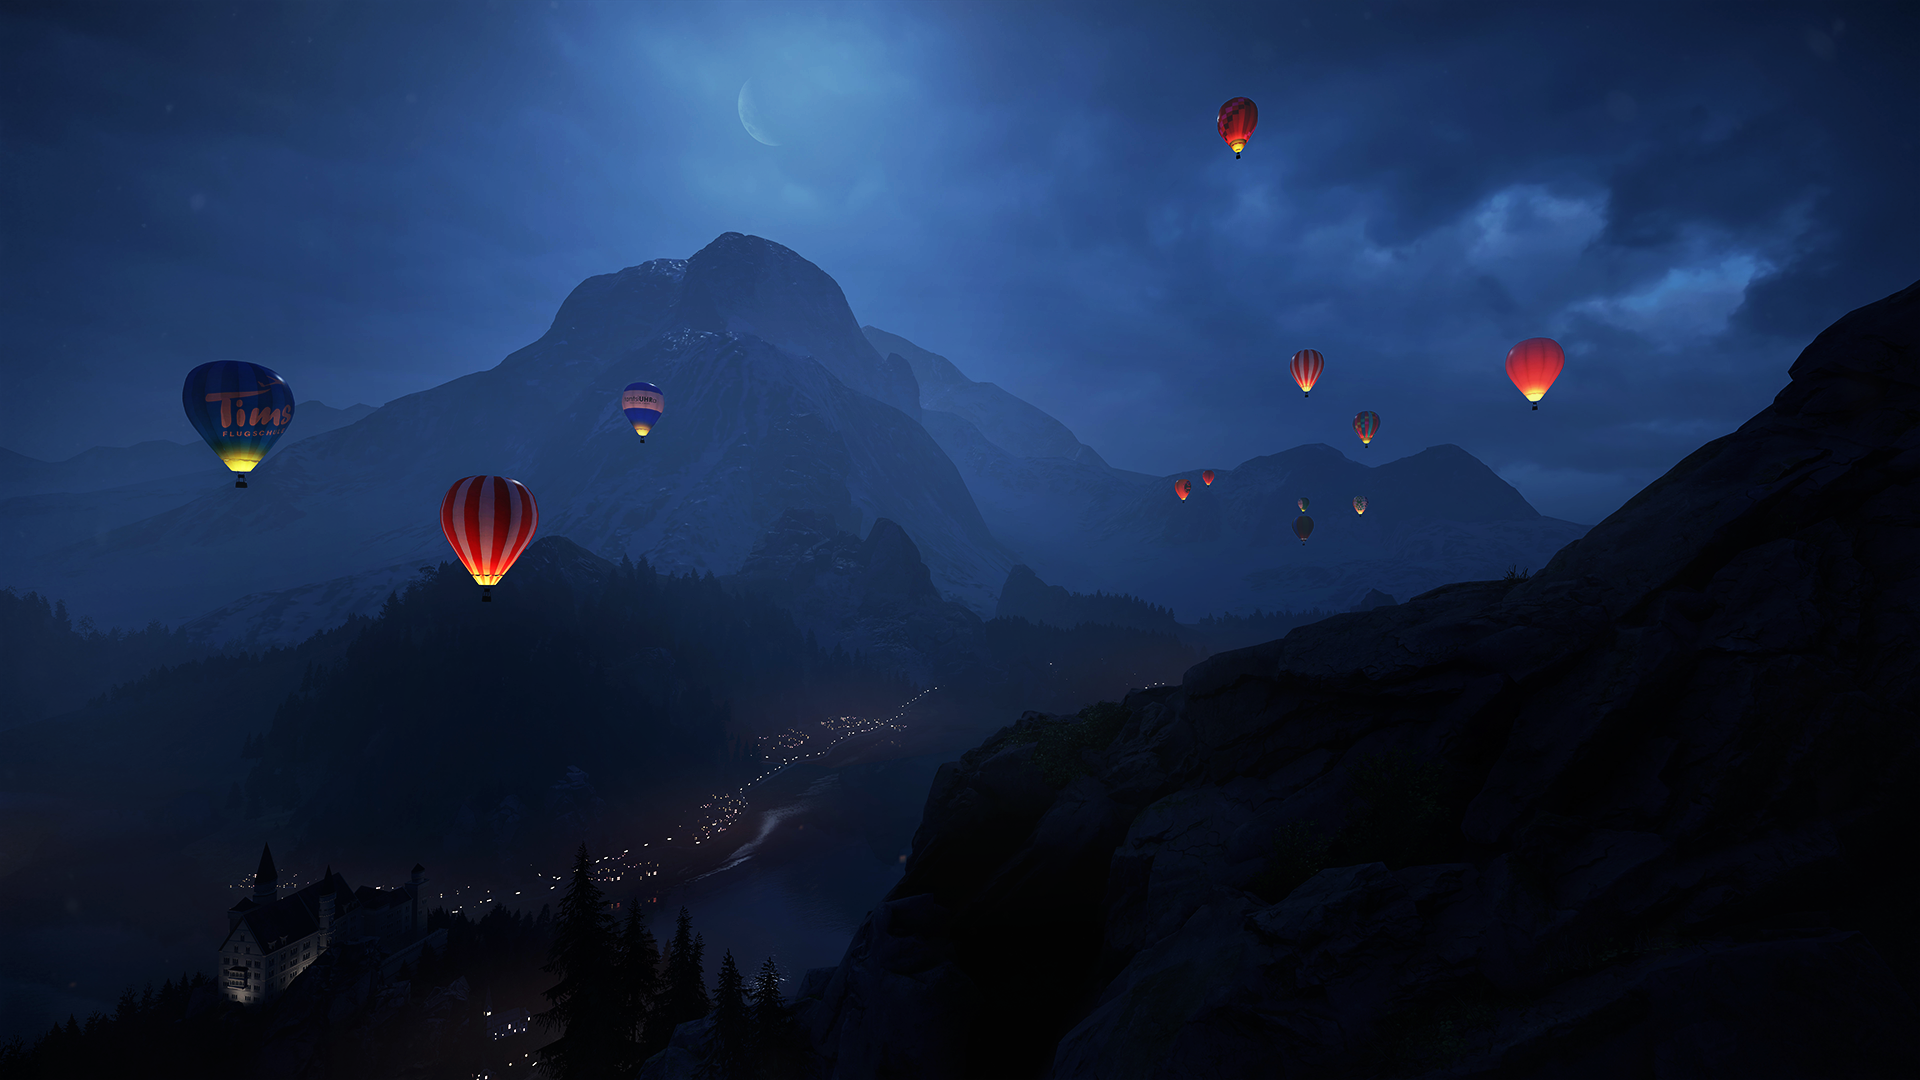 Climb_Alps_Hard_EnvShot_Balloons_Sky_Wide_Final_1080.png